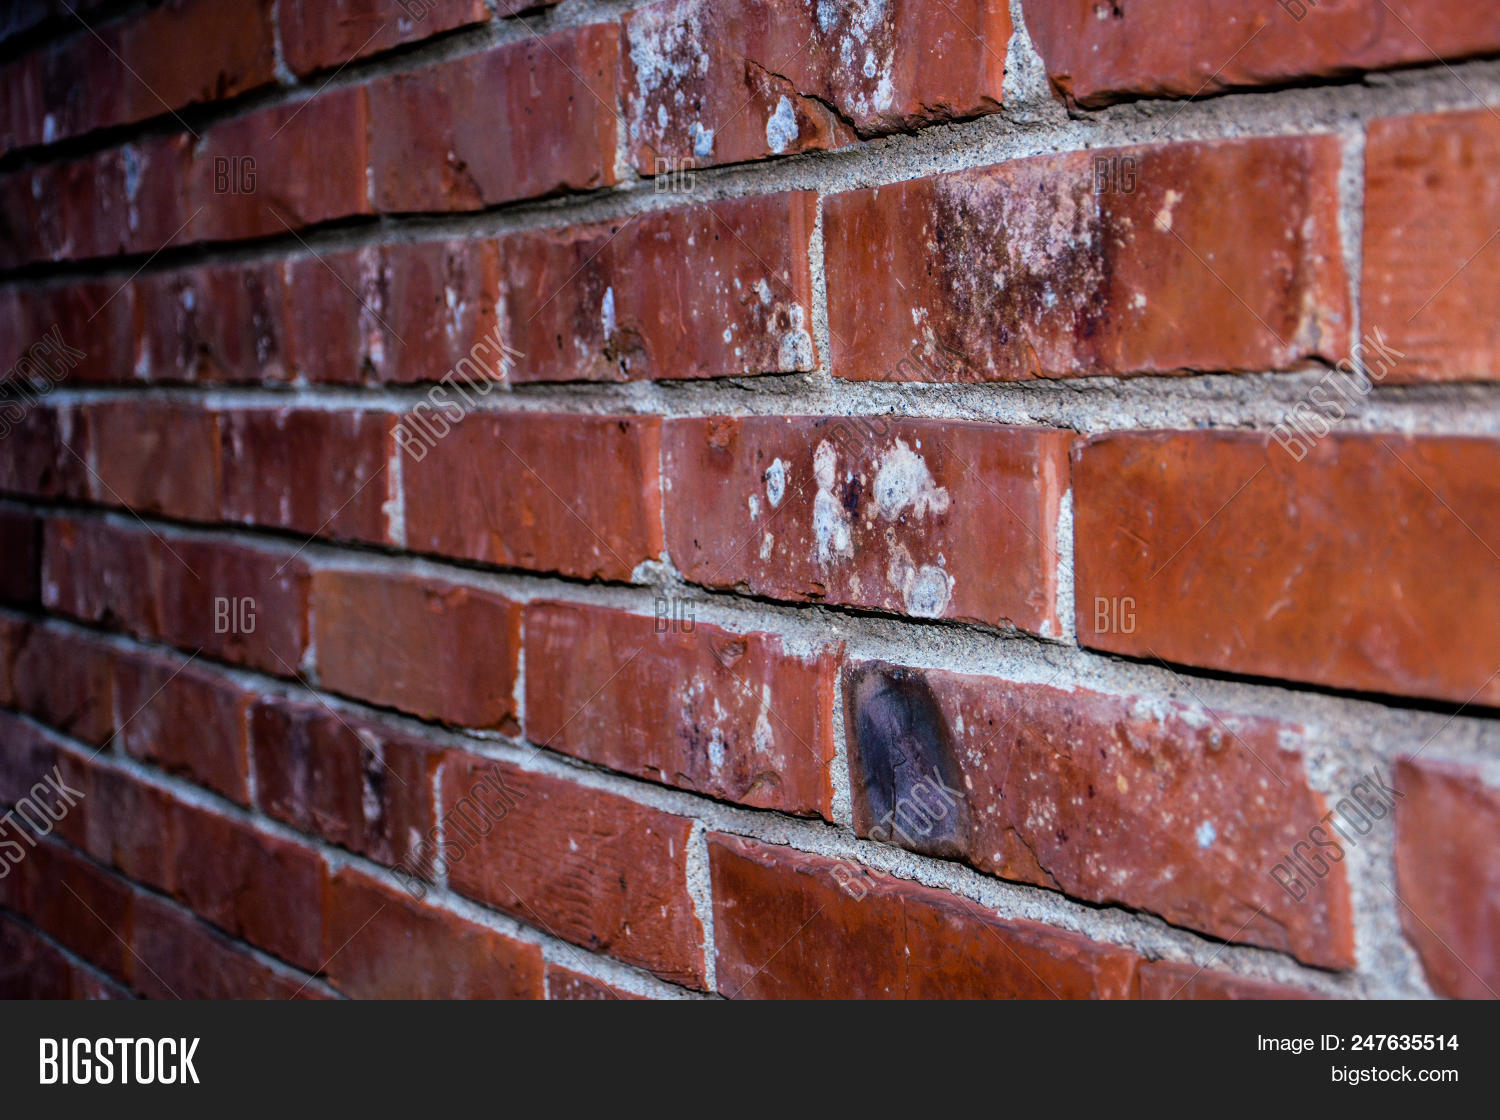 Brick Wall Red Color Image Photo Free Trial Bigstock